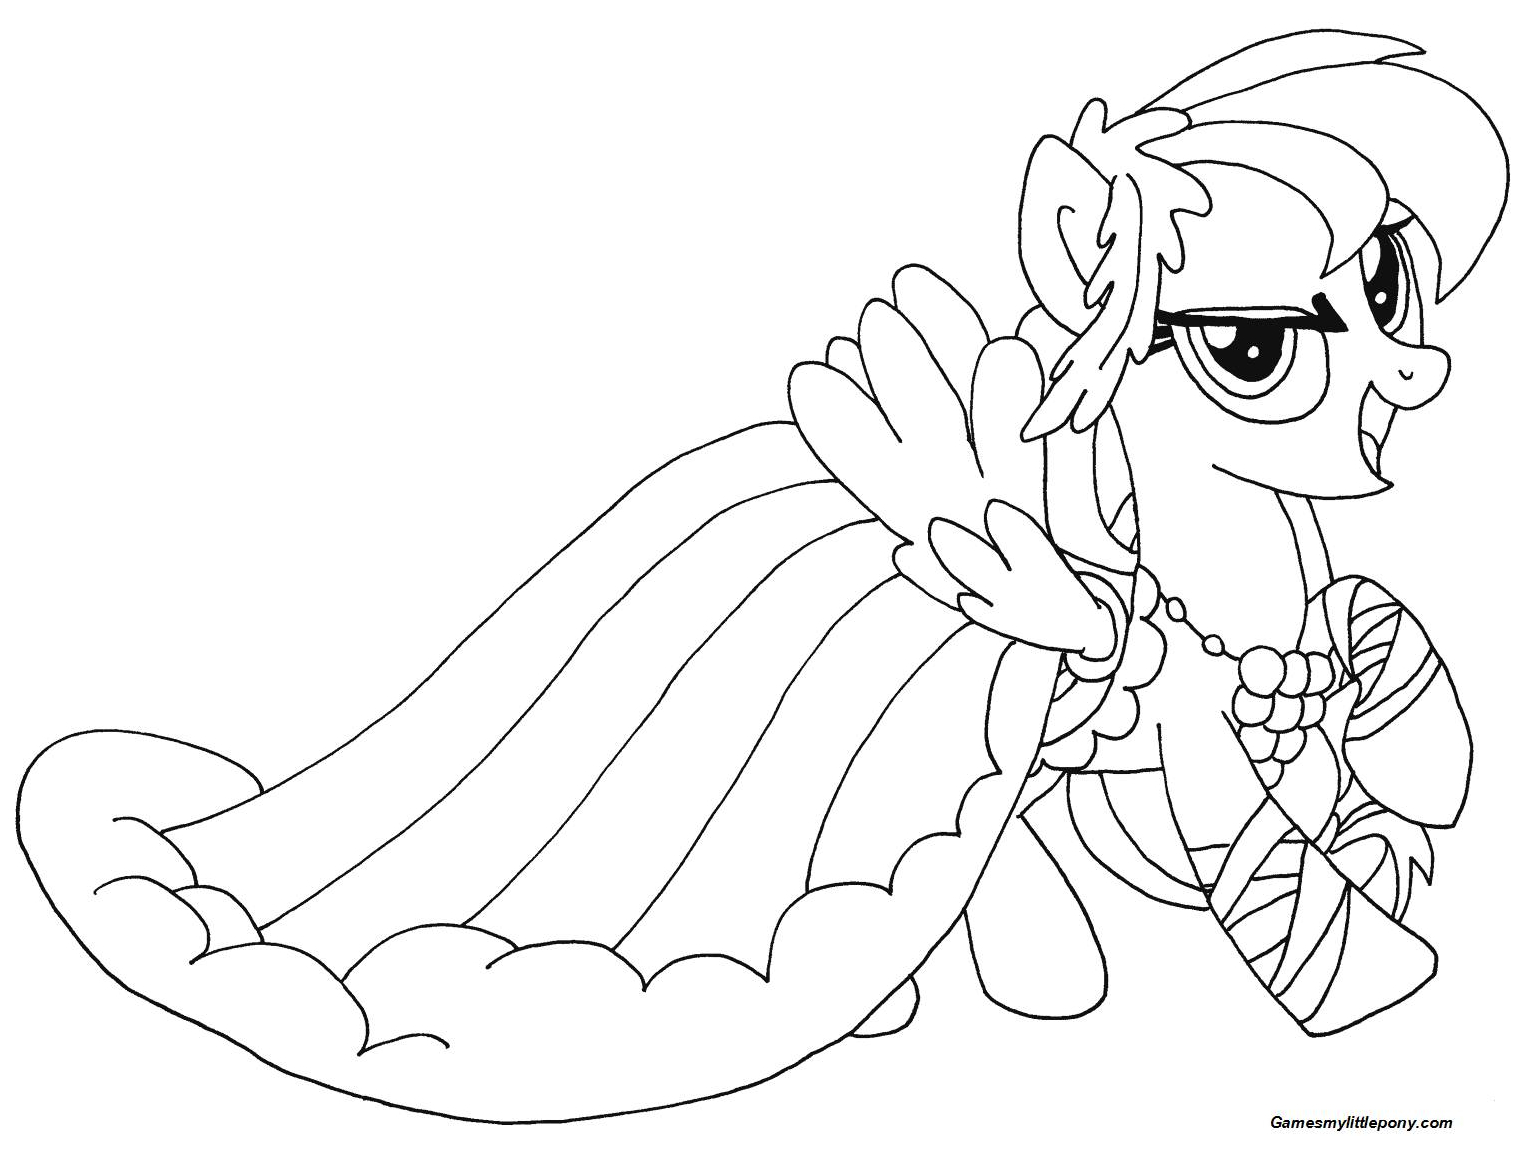 My Little Pony Rainbow Dash from My Little Pony Coloring Page